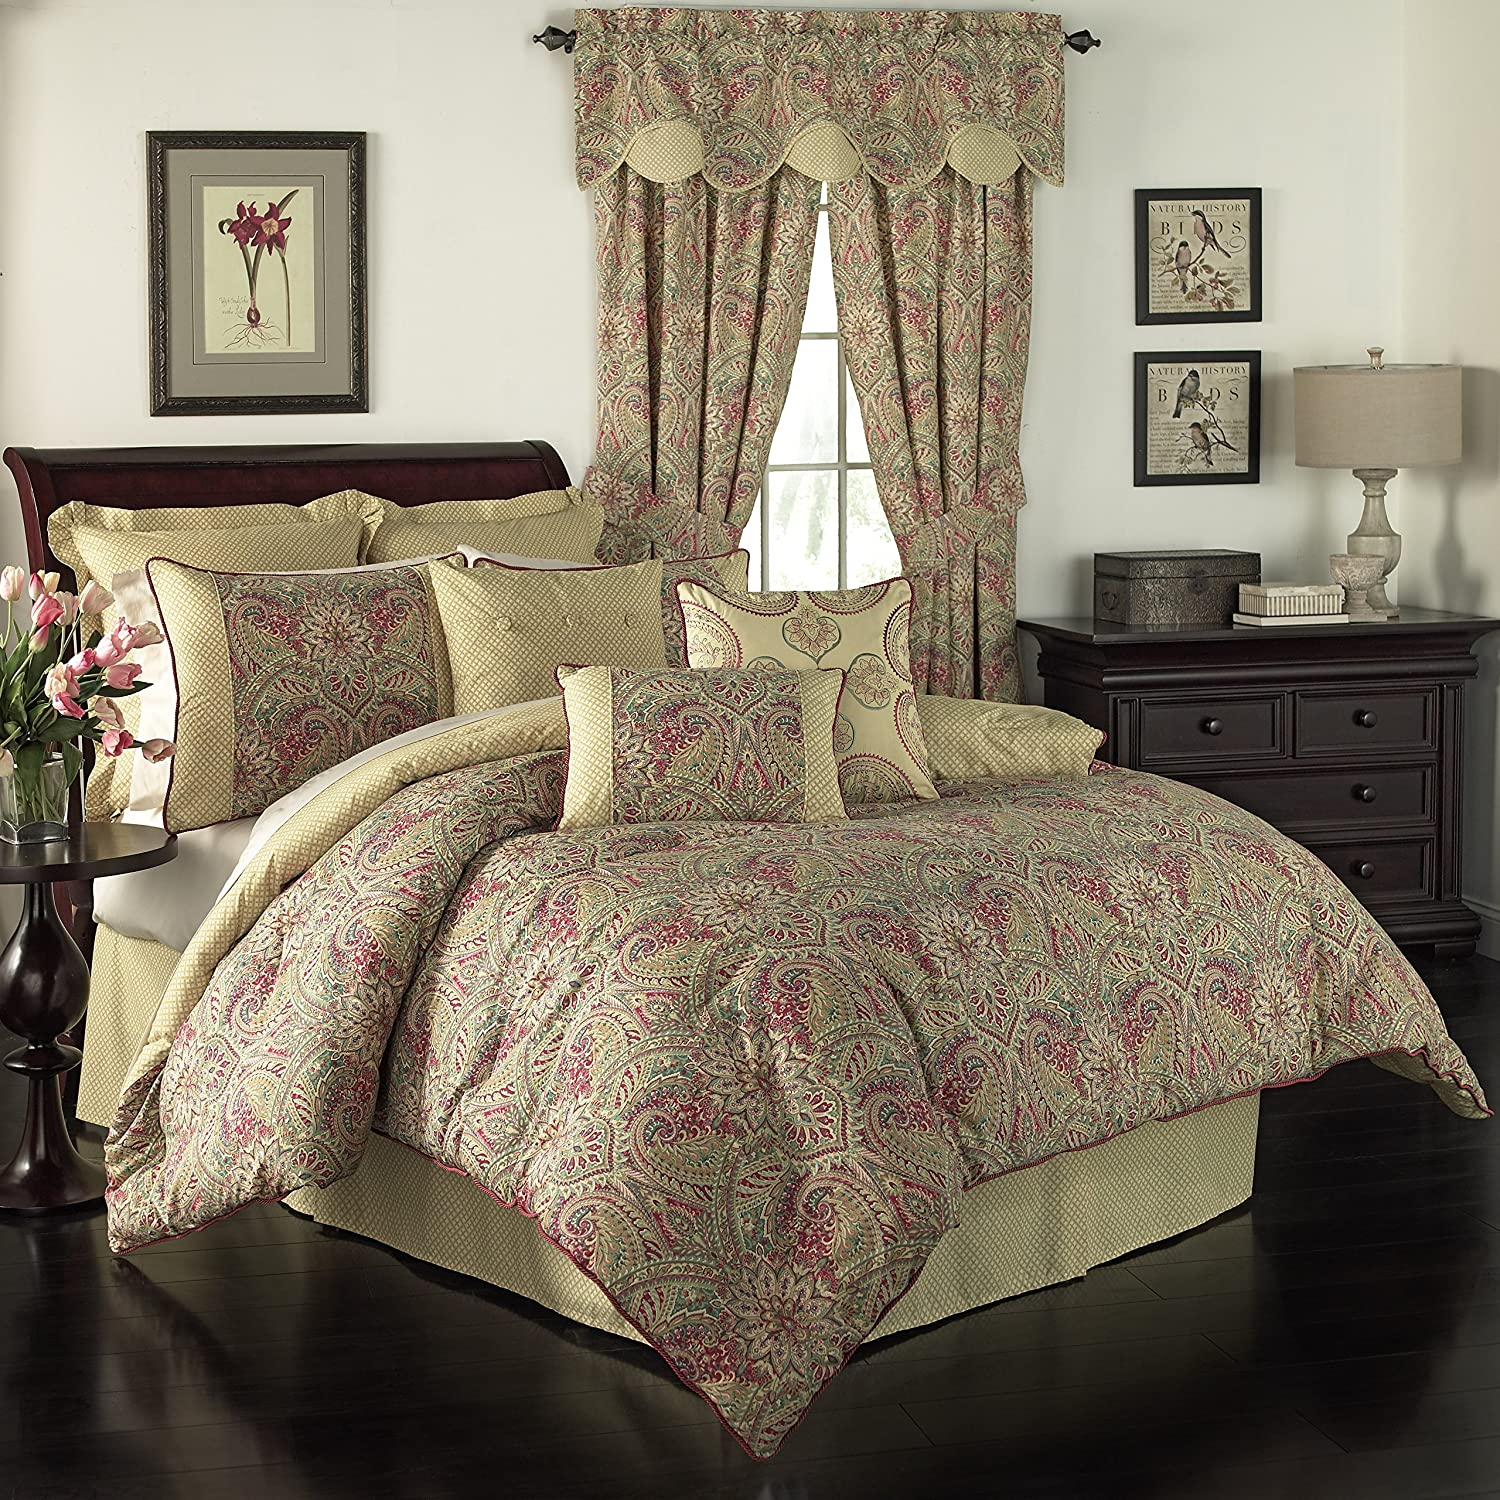 WAVERLY Swept Away Bedding Collection, King, Berry